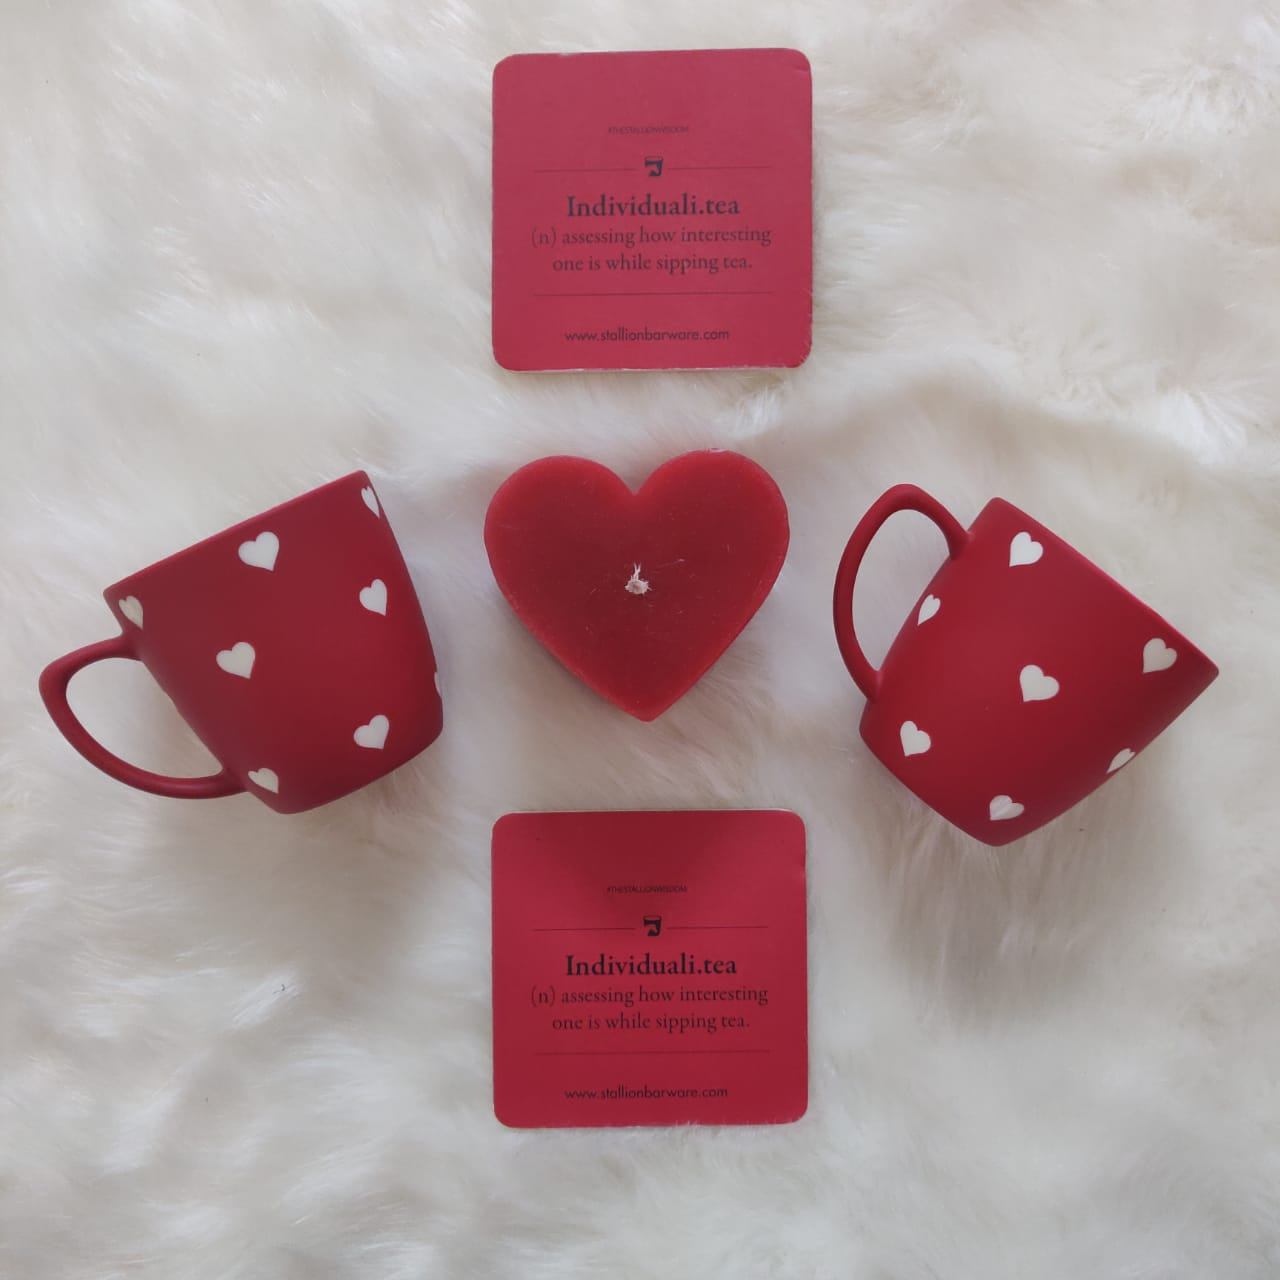 Truly Madly Deeply Unbreakable Tea Cups, set of 2 with Individuali.tea coasters